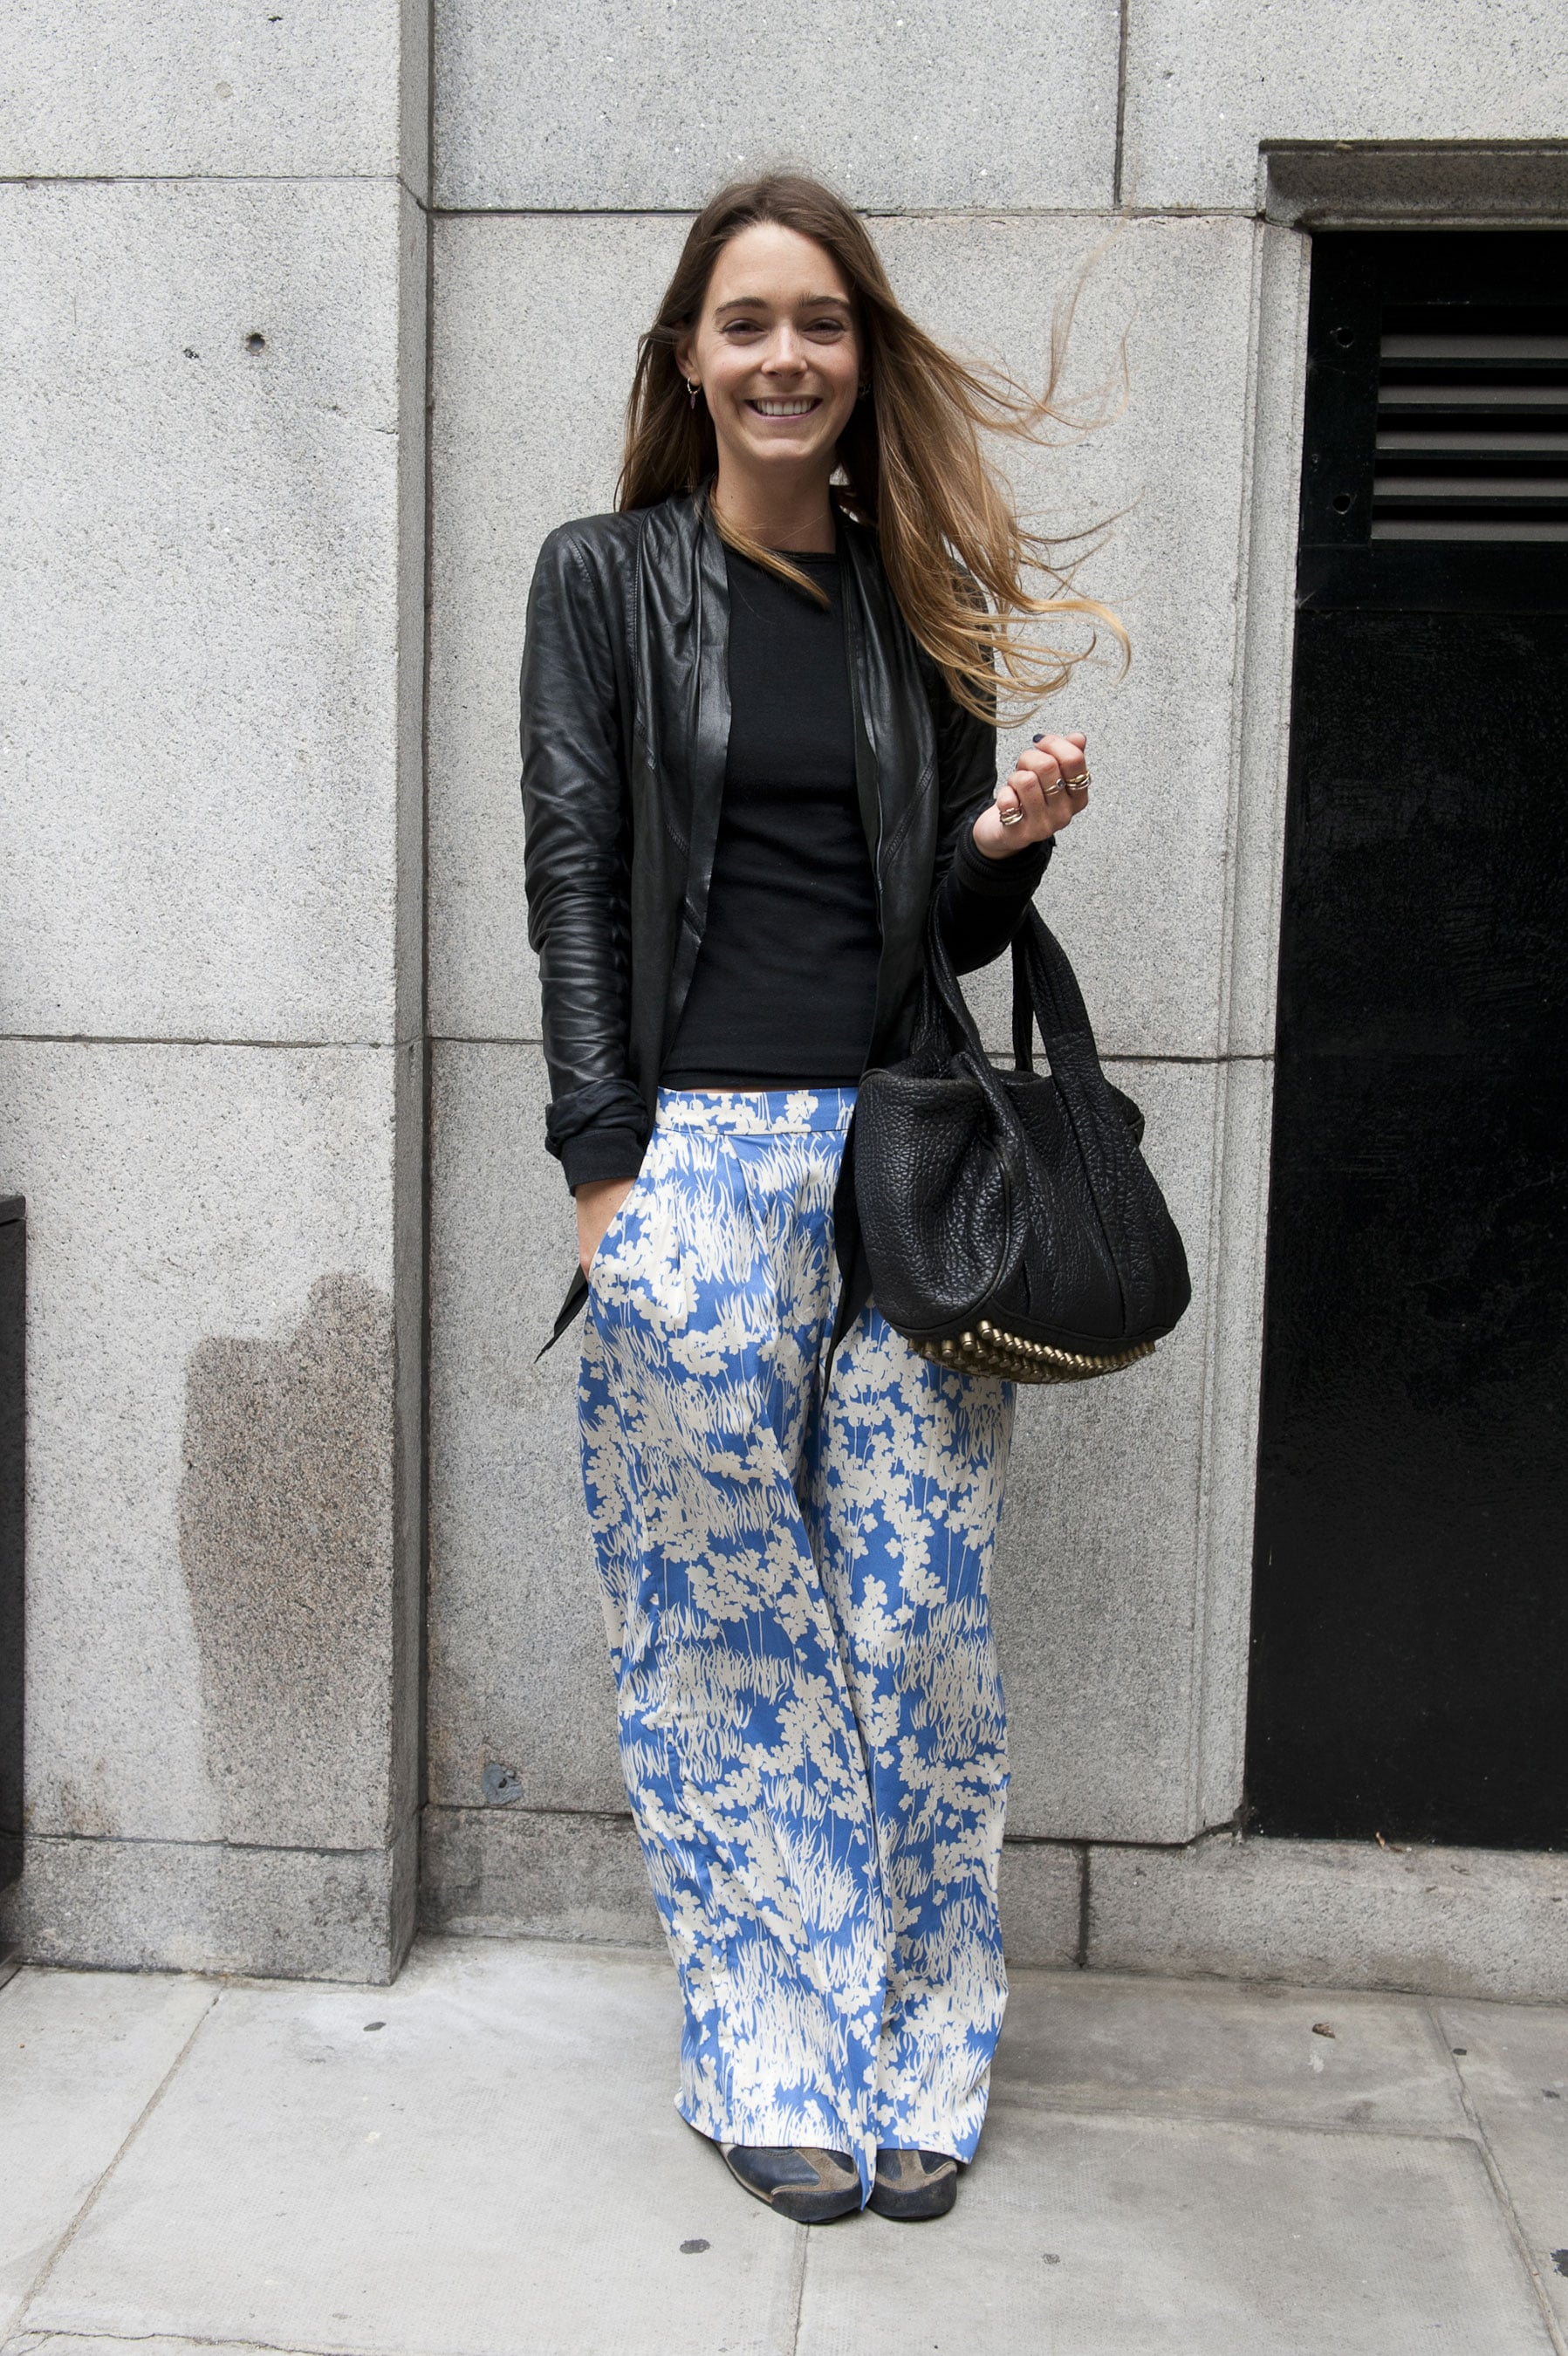 You have to smile when you see those pants.